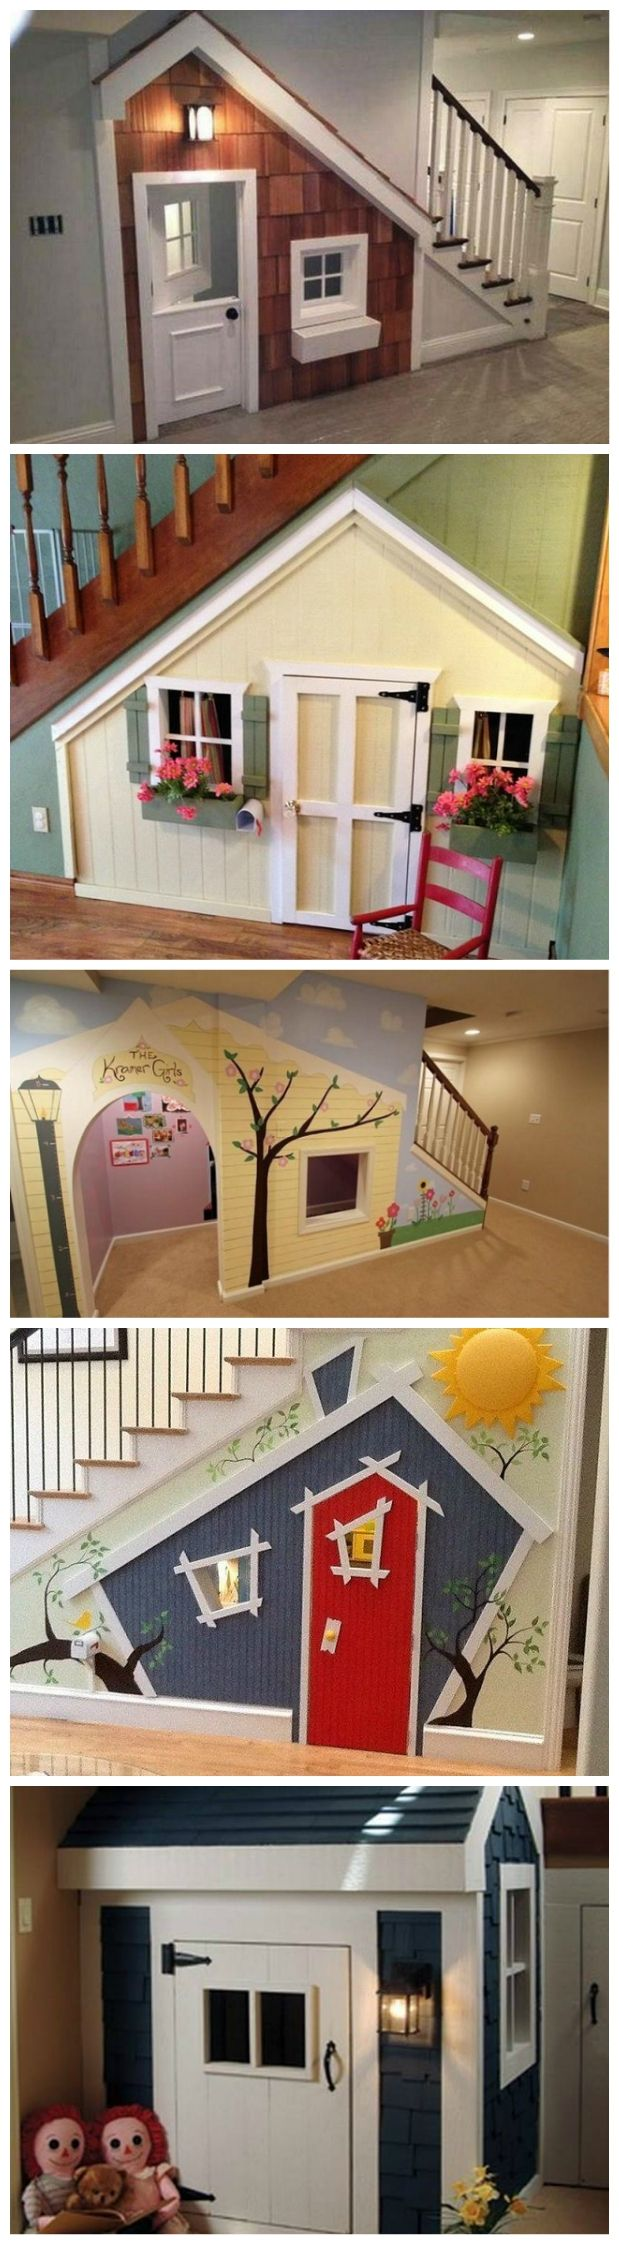 What Great Idea Of Having A Playhouse Under Your Stairs!